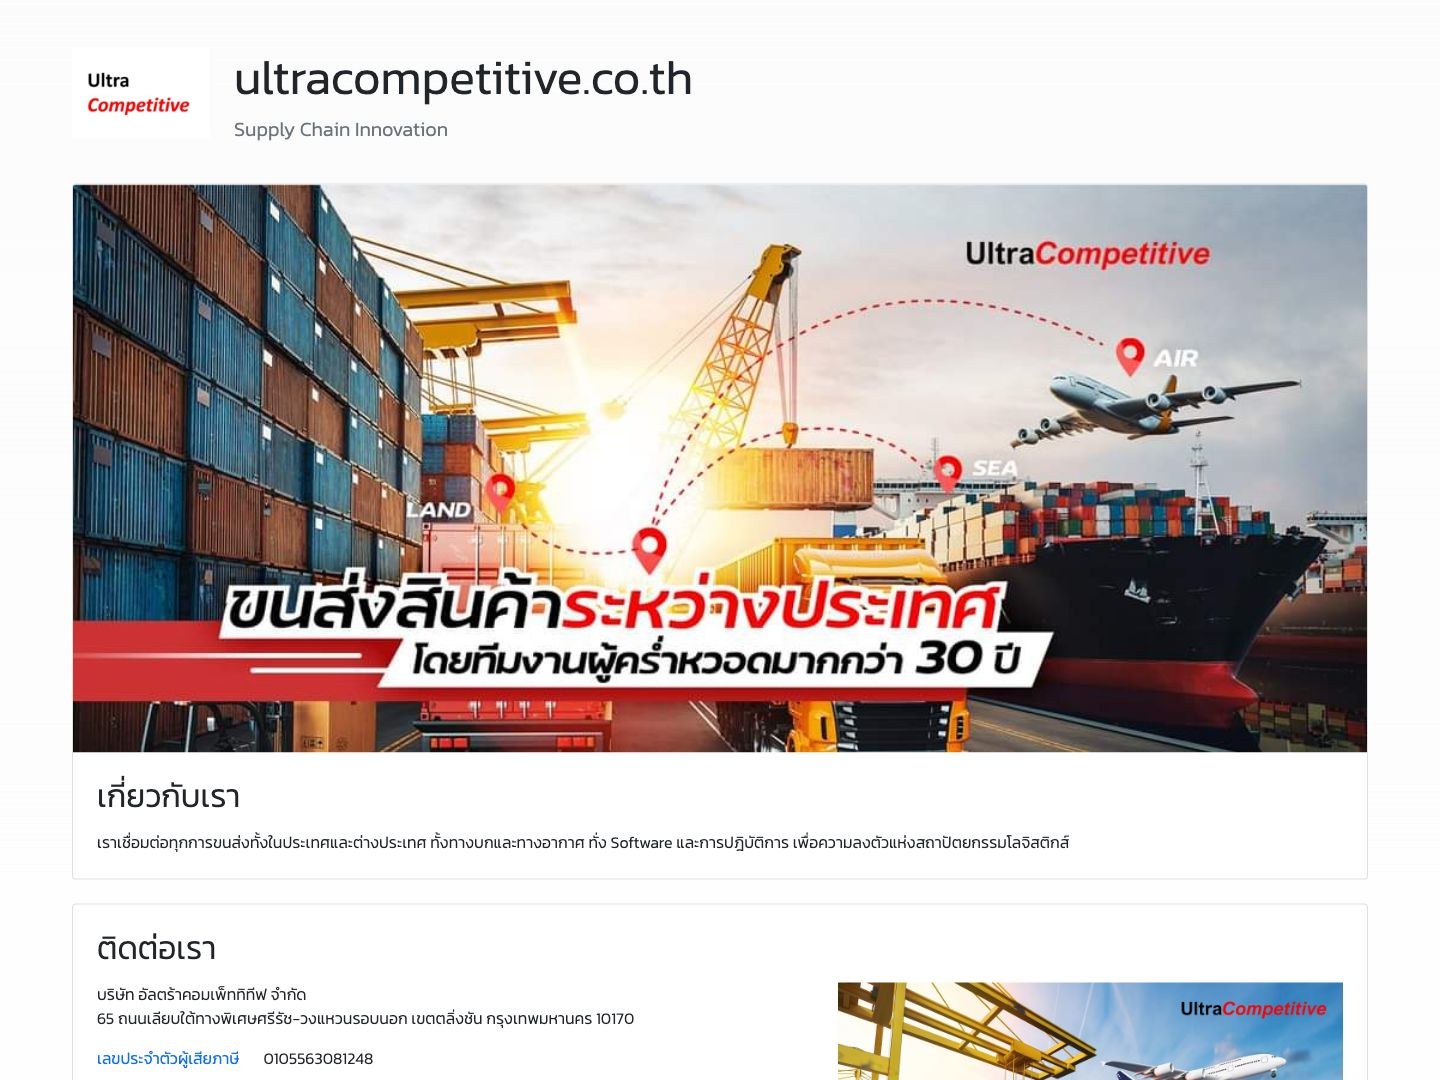 ultracompetitive.co.th